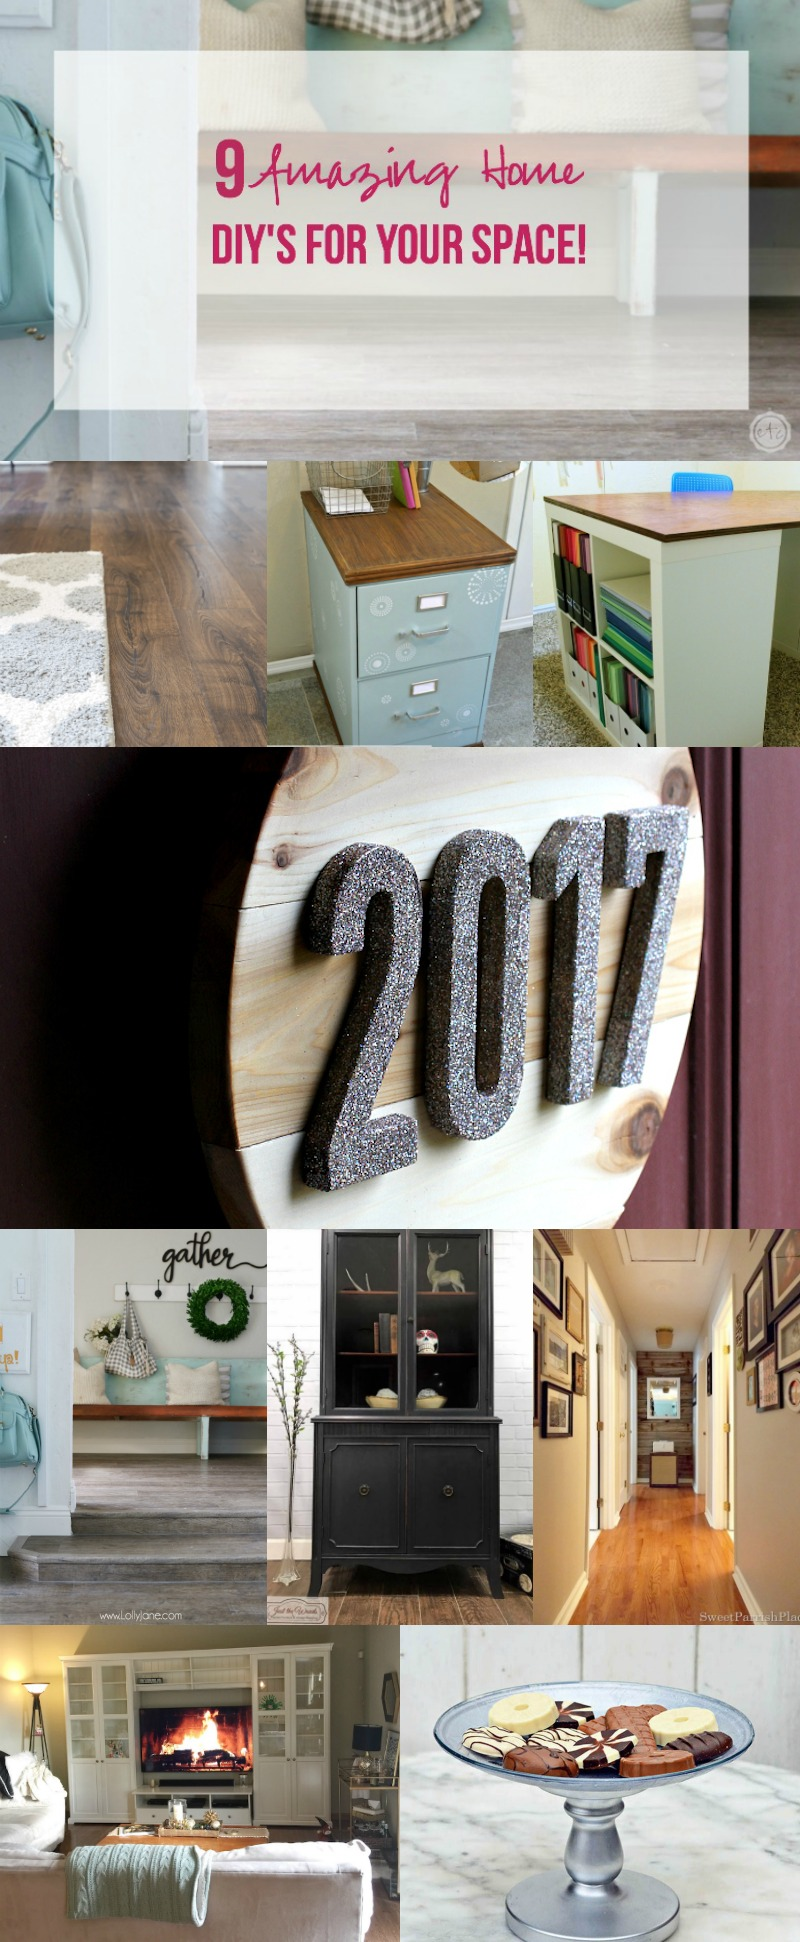 9 Amazing Home DIY's for Your Space!